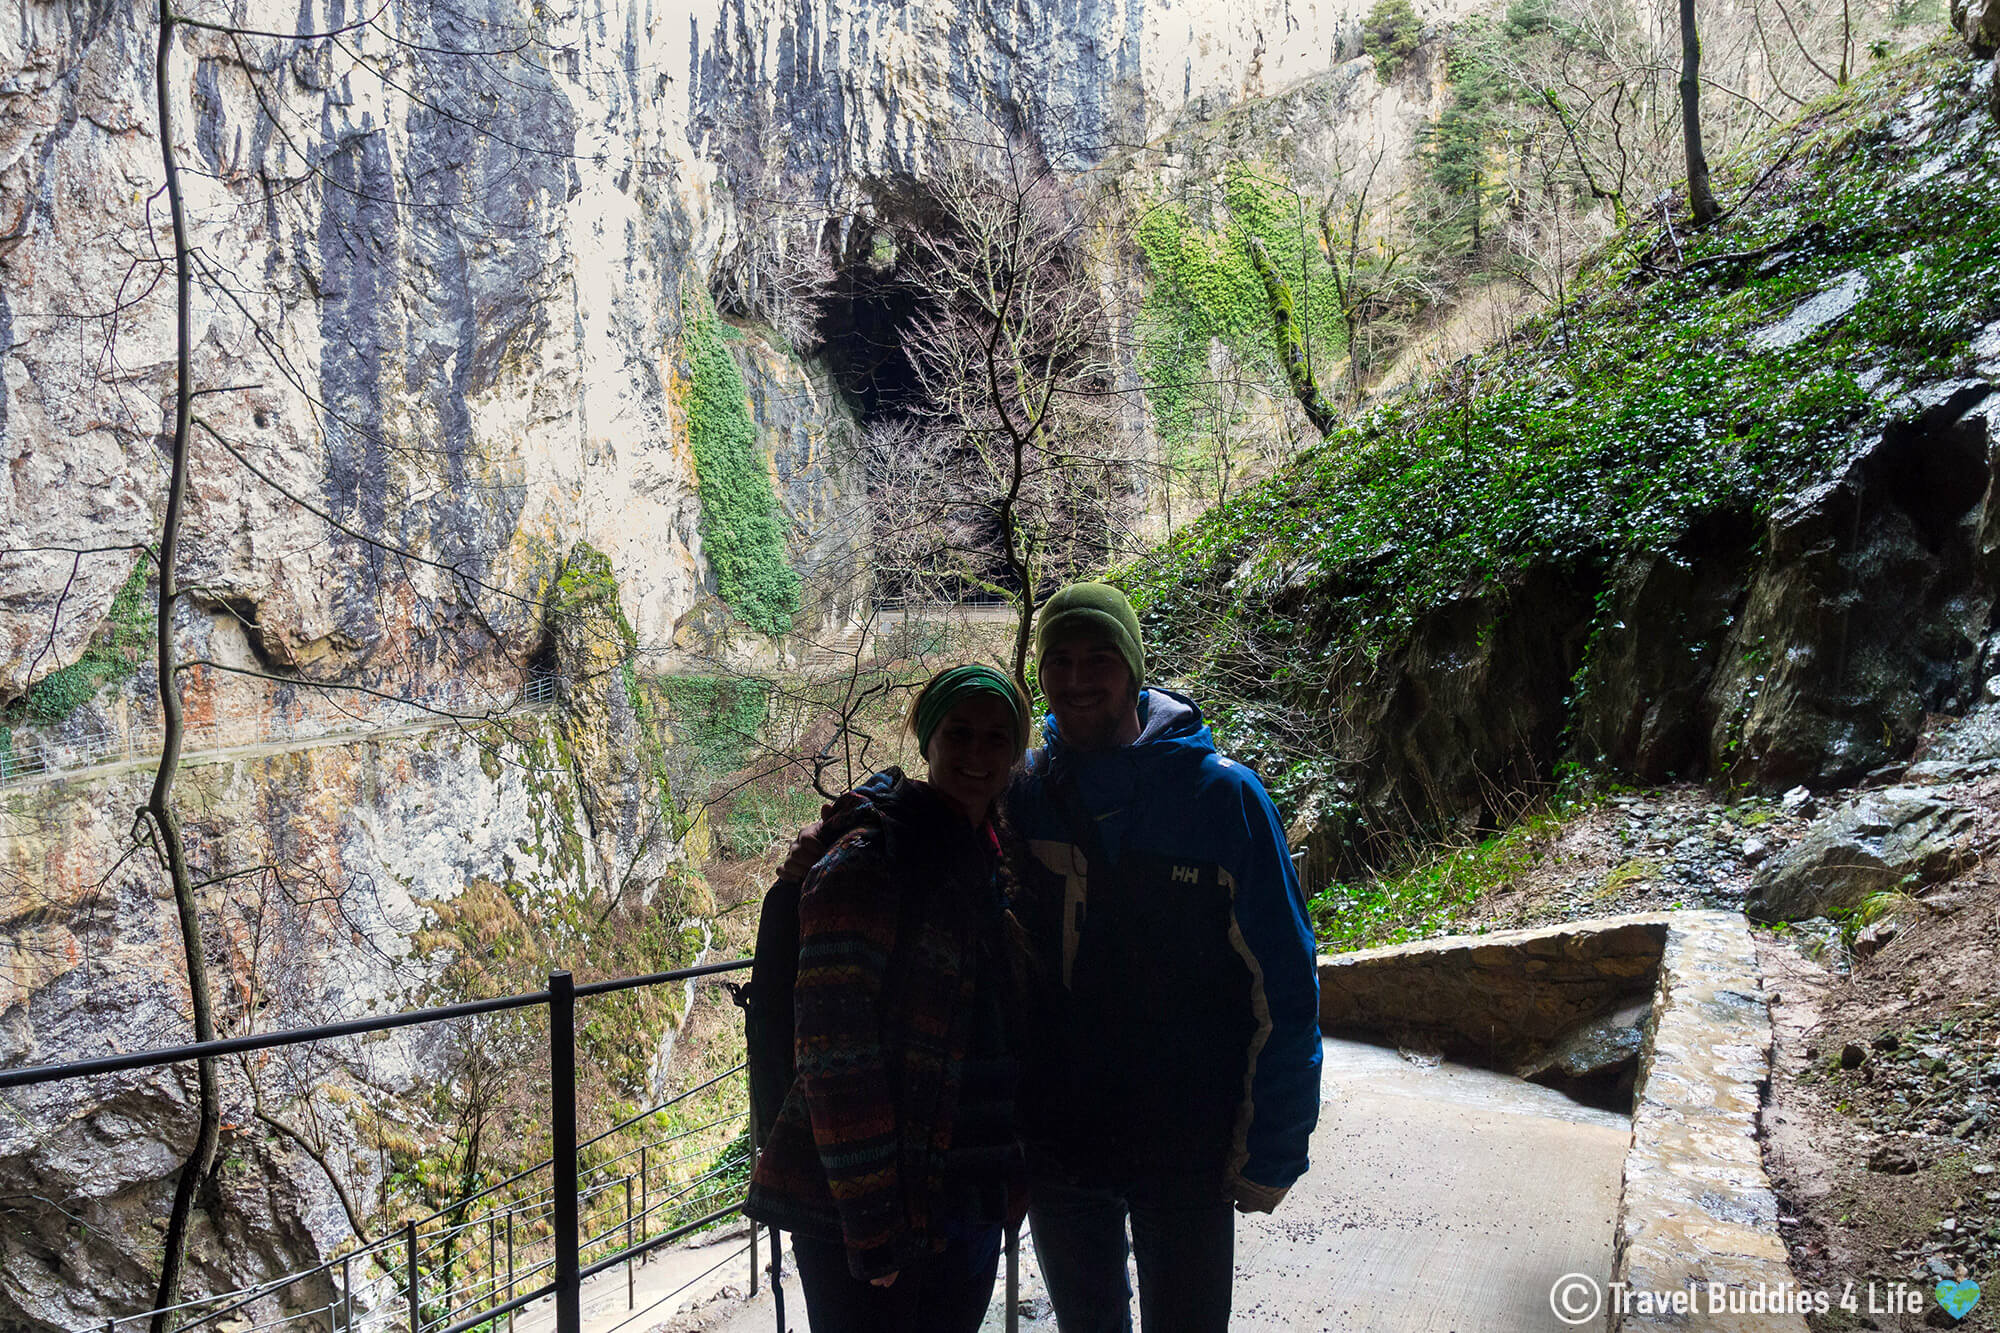 Joey and Ali Silhouette Outside of Slovenia's Škocjan Caves UNESCO Site in the Karst Region of Europe's Balkan Countries